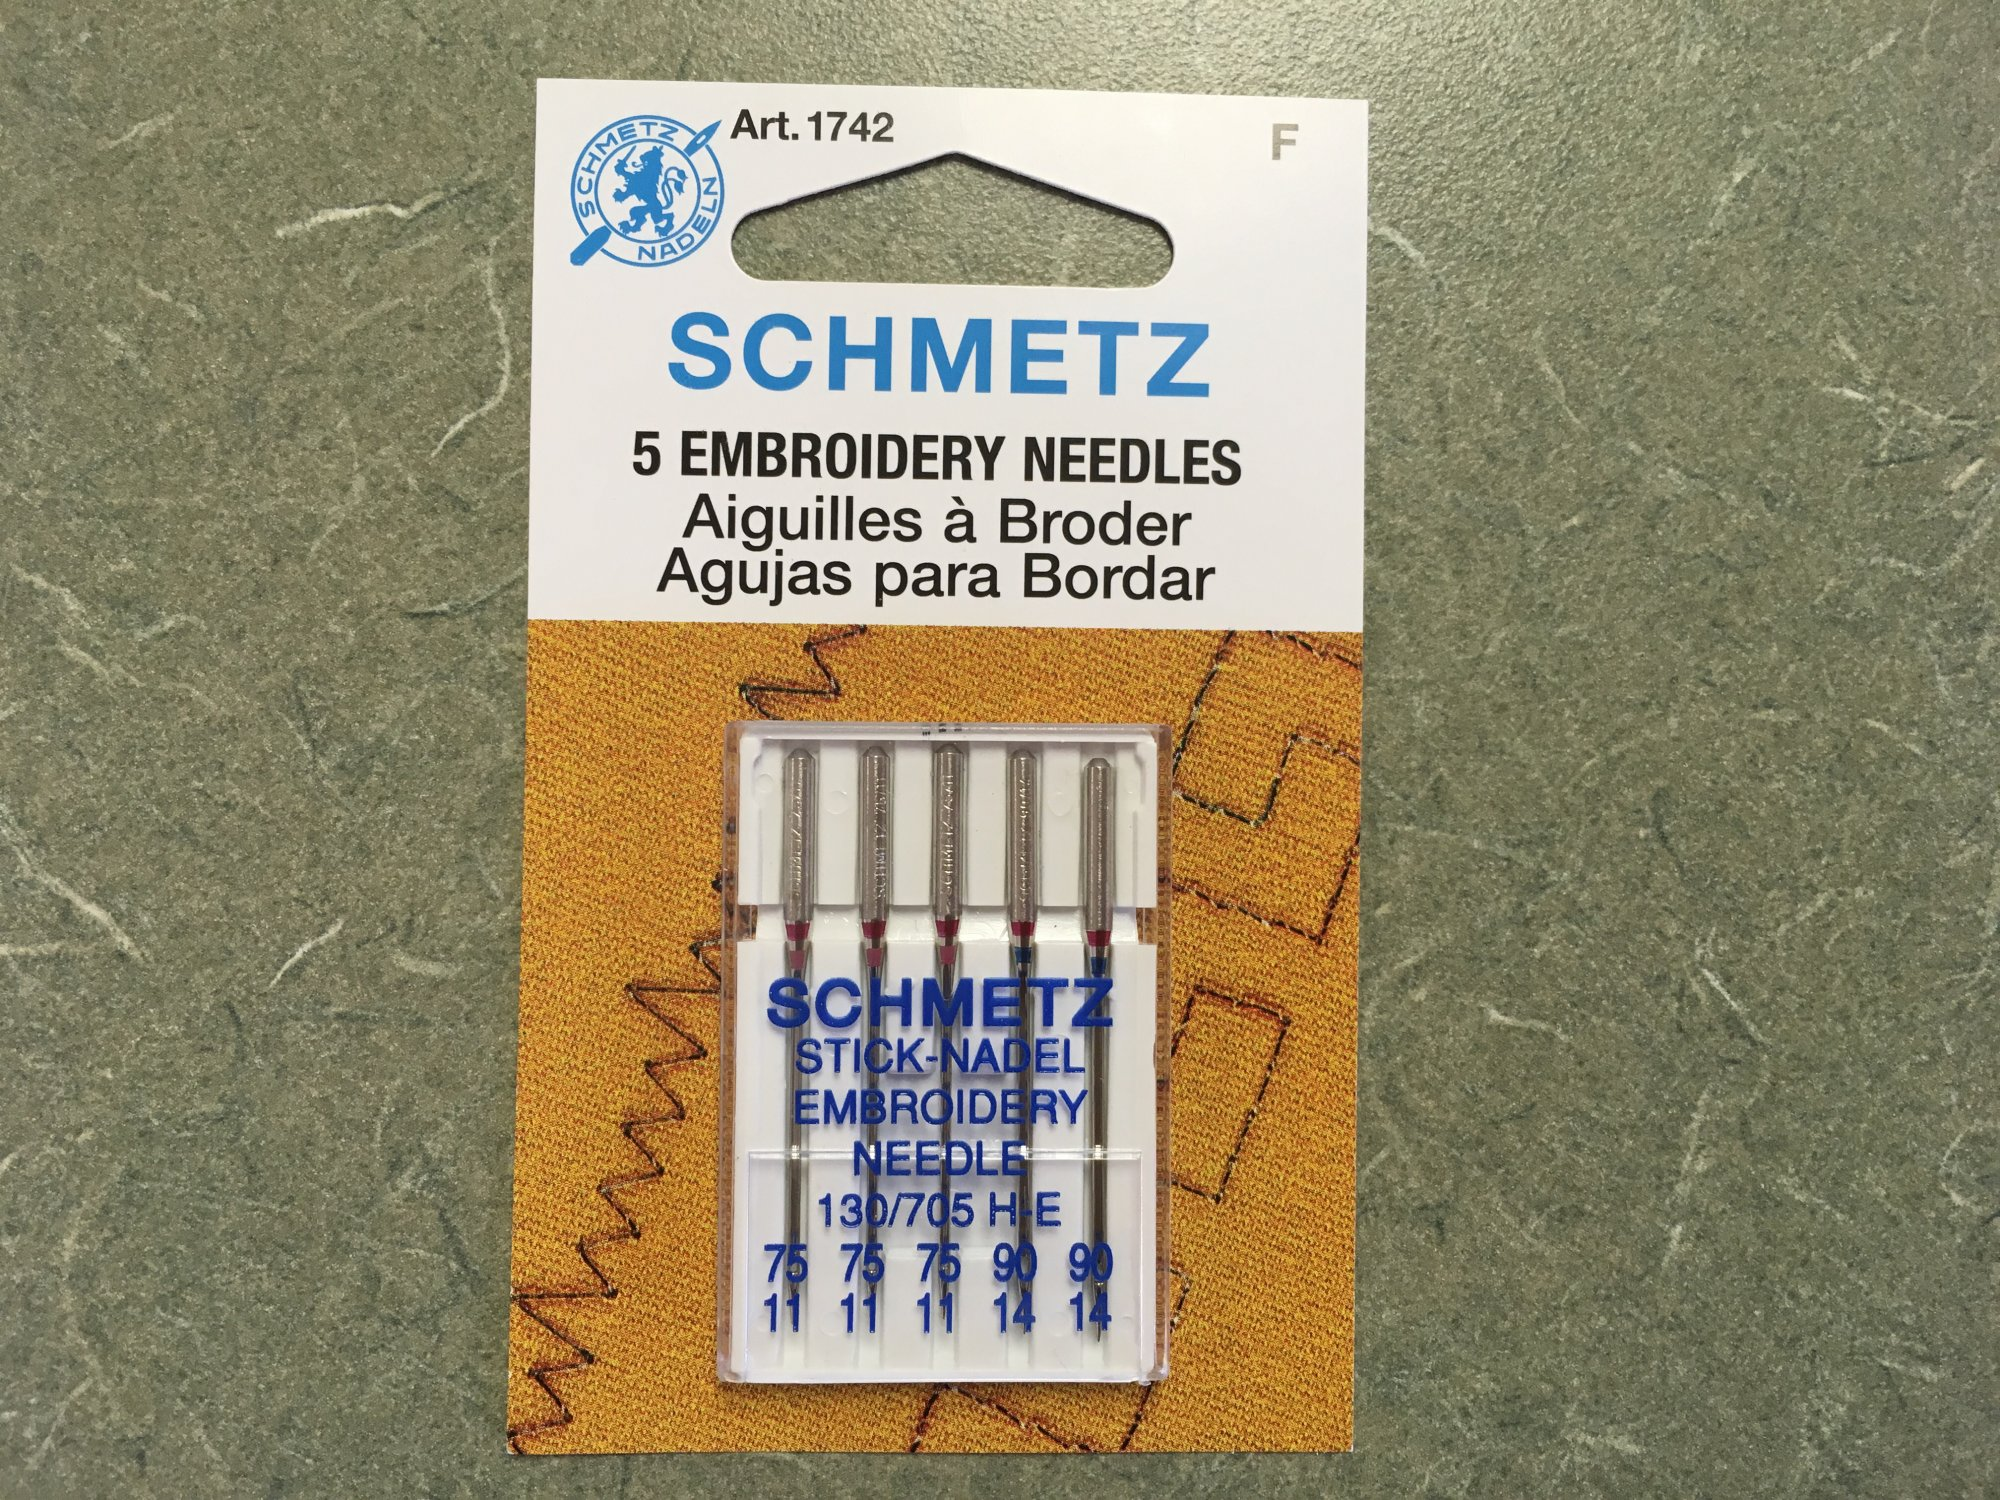 Embroidery Needles 75/11 and 90/14 Assortment. (5 pk). 1742